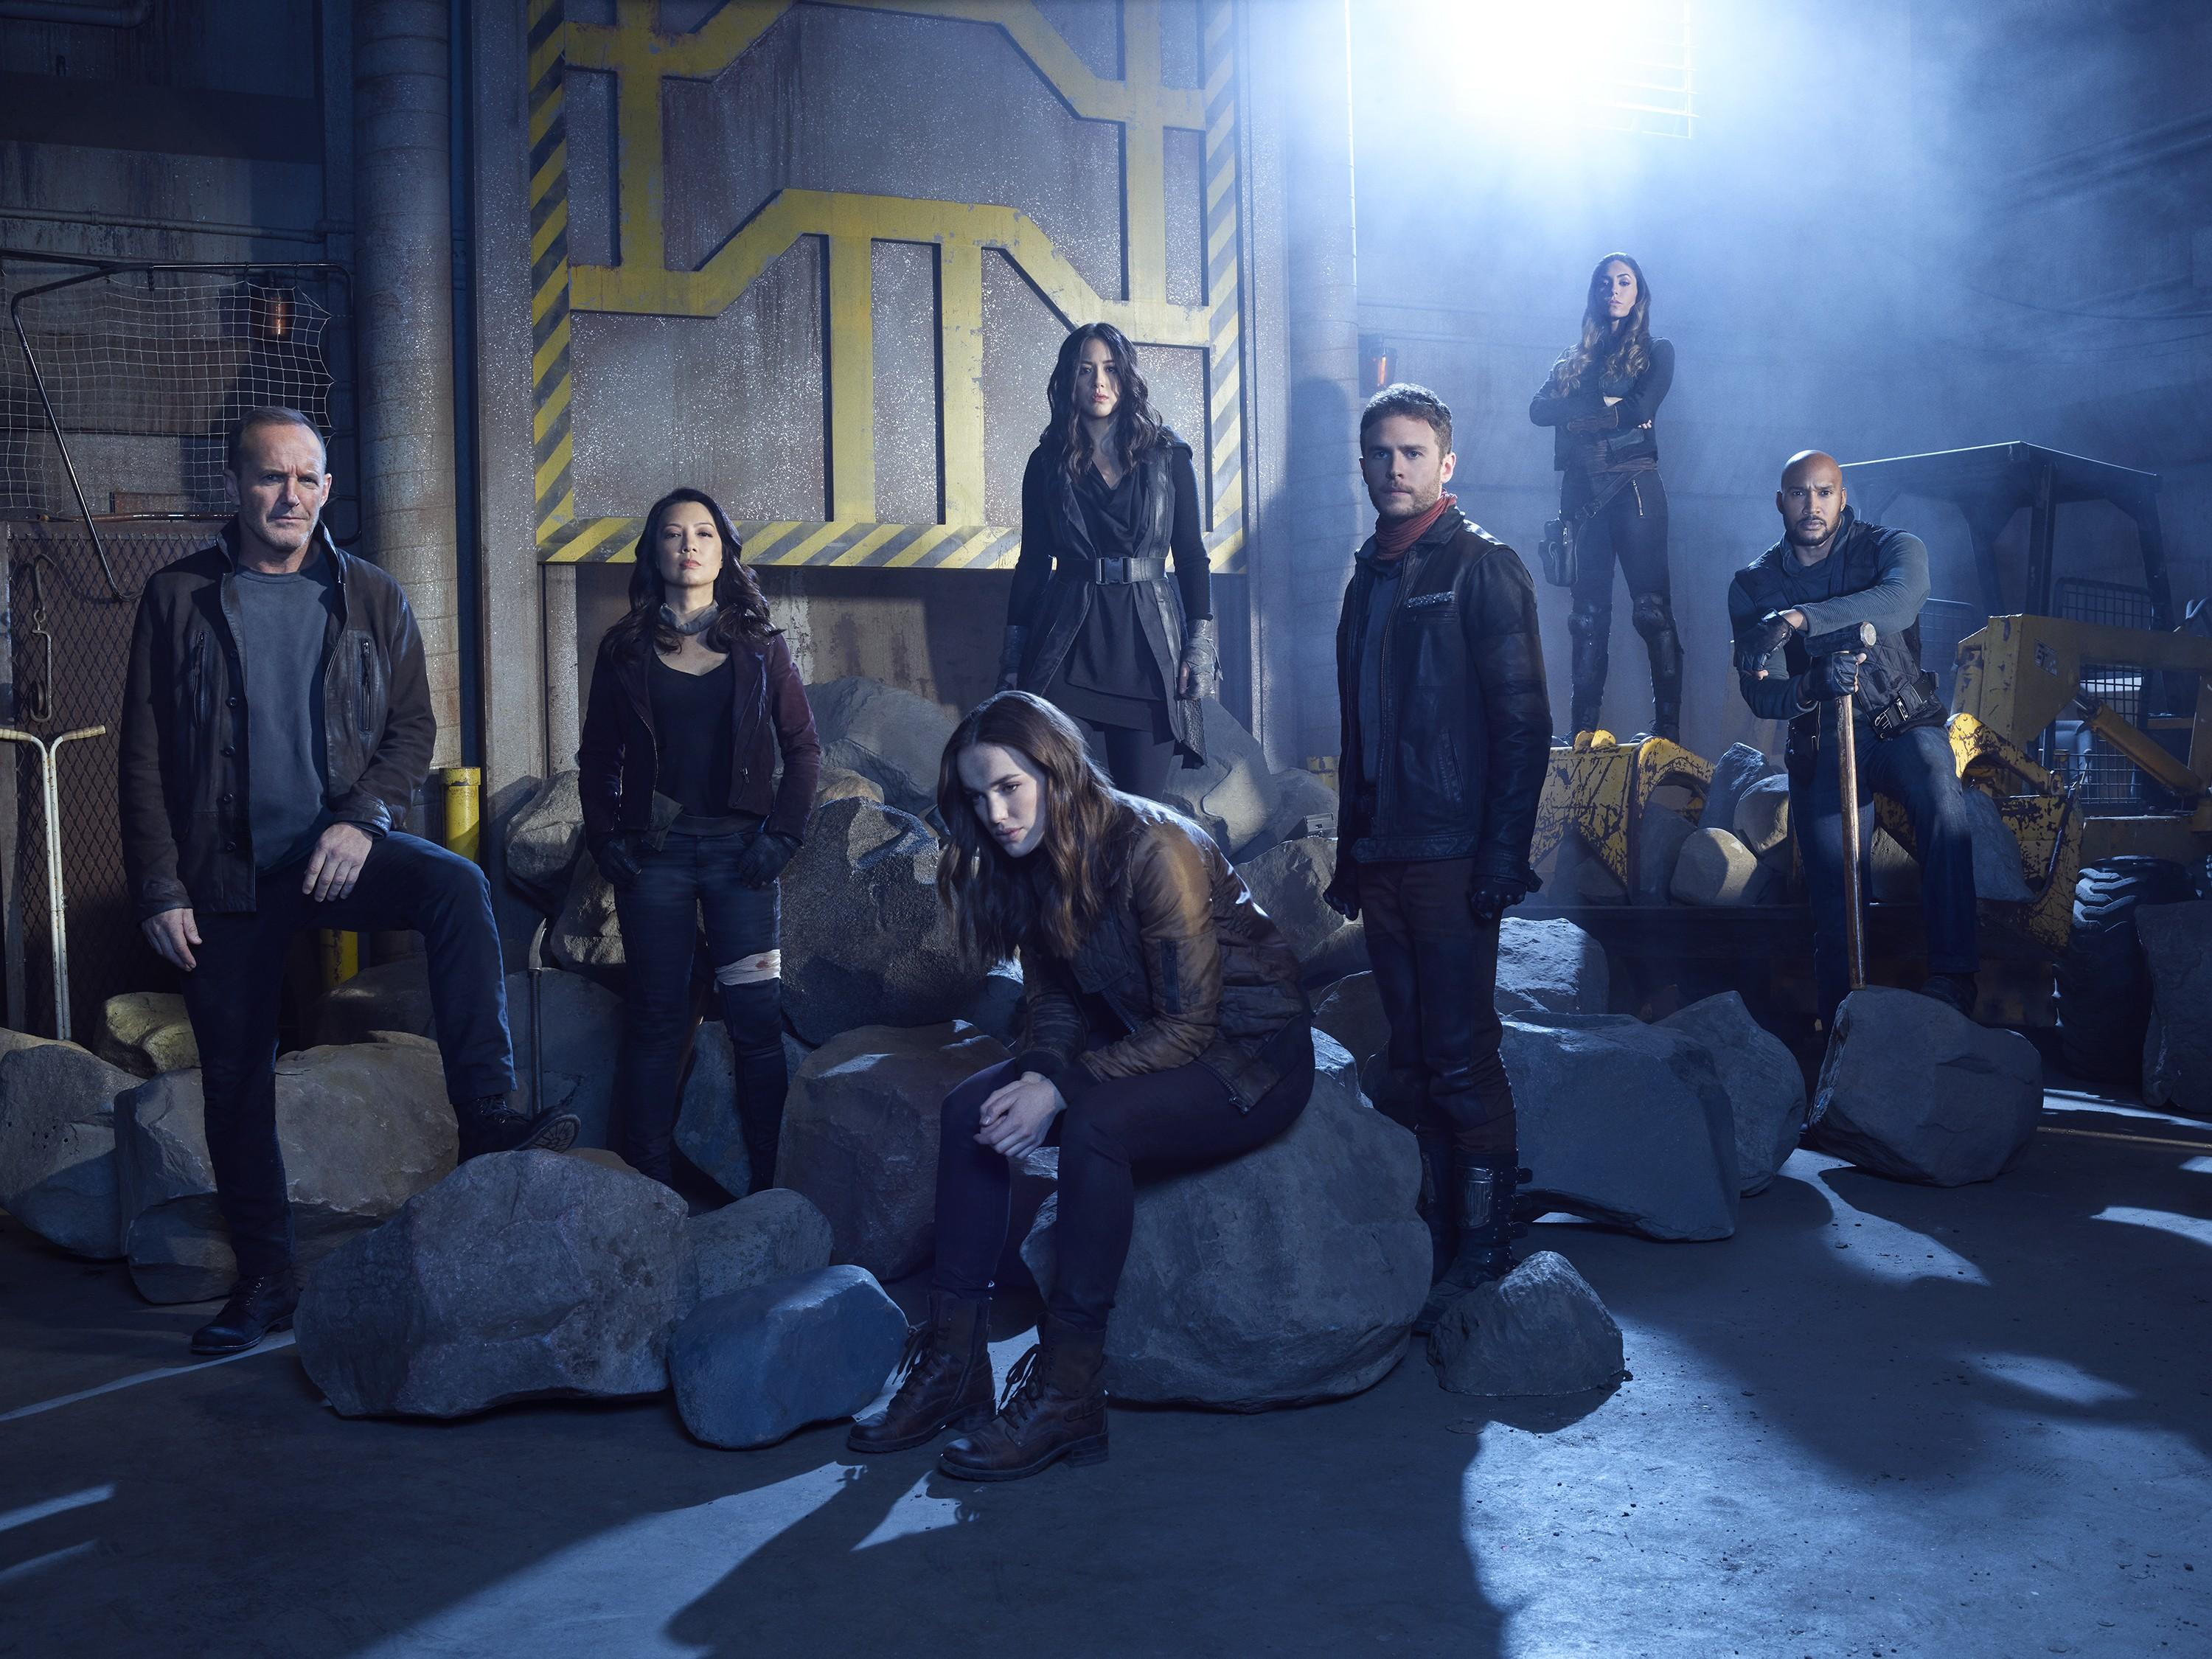 Download Agents Of Shield Wallpaper Hd Backgrounds Download Itl Cat